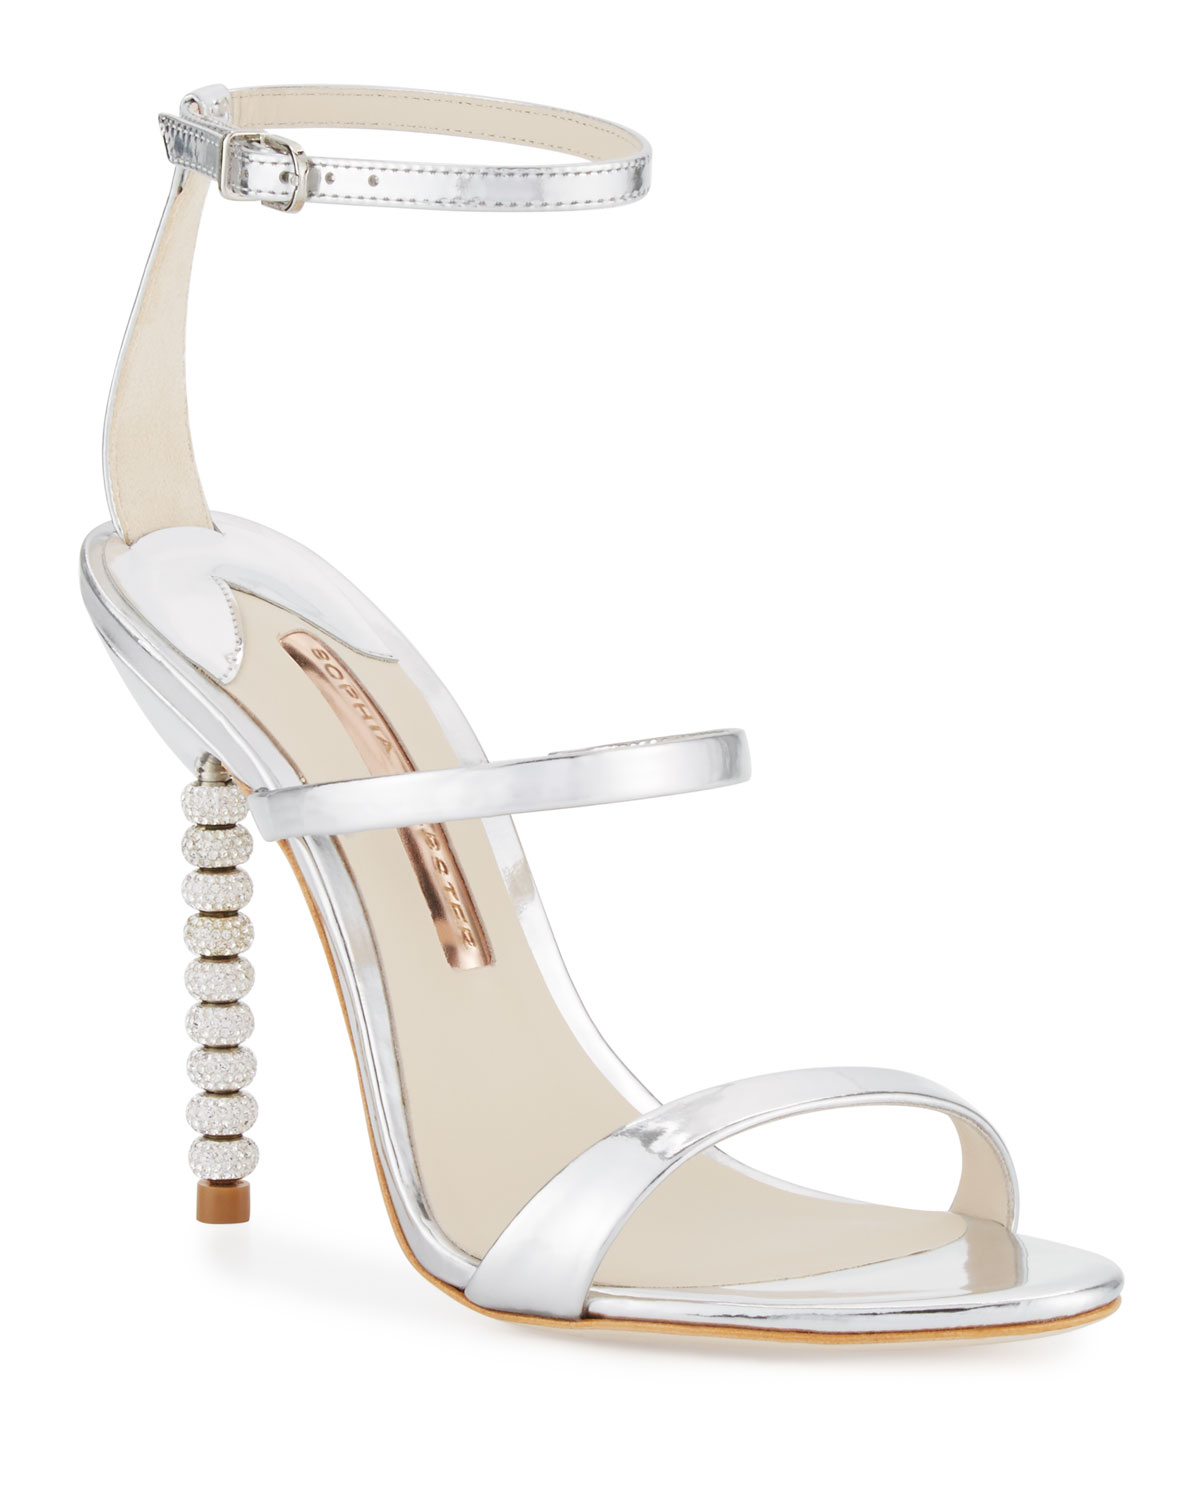 5bbd1f06ad4 Sophia Webster Rosalind Crystal-Heel Leather Sandals